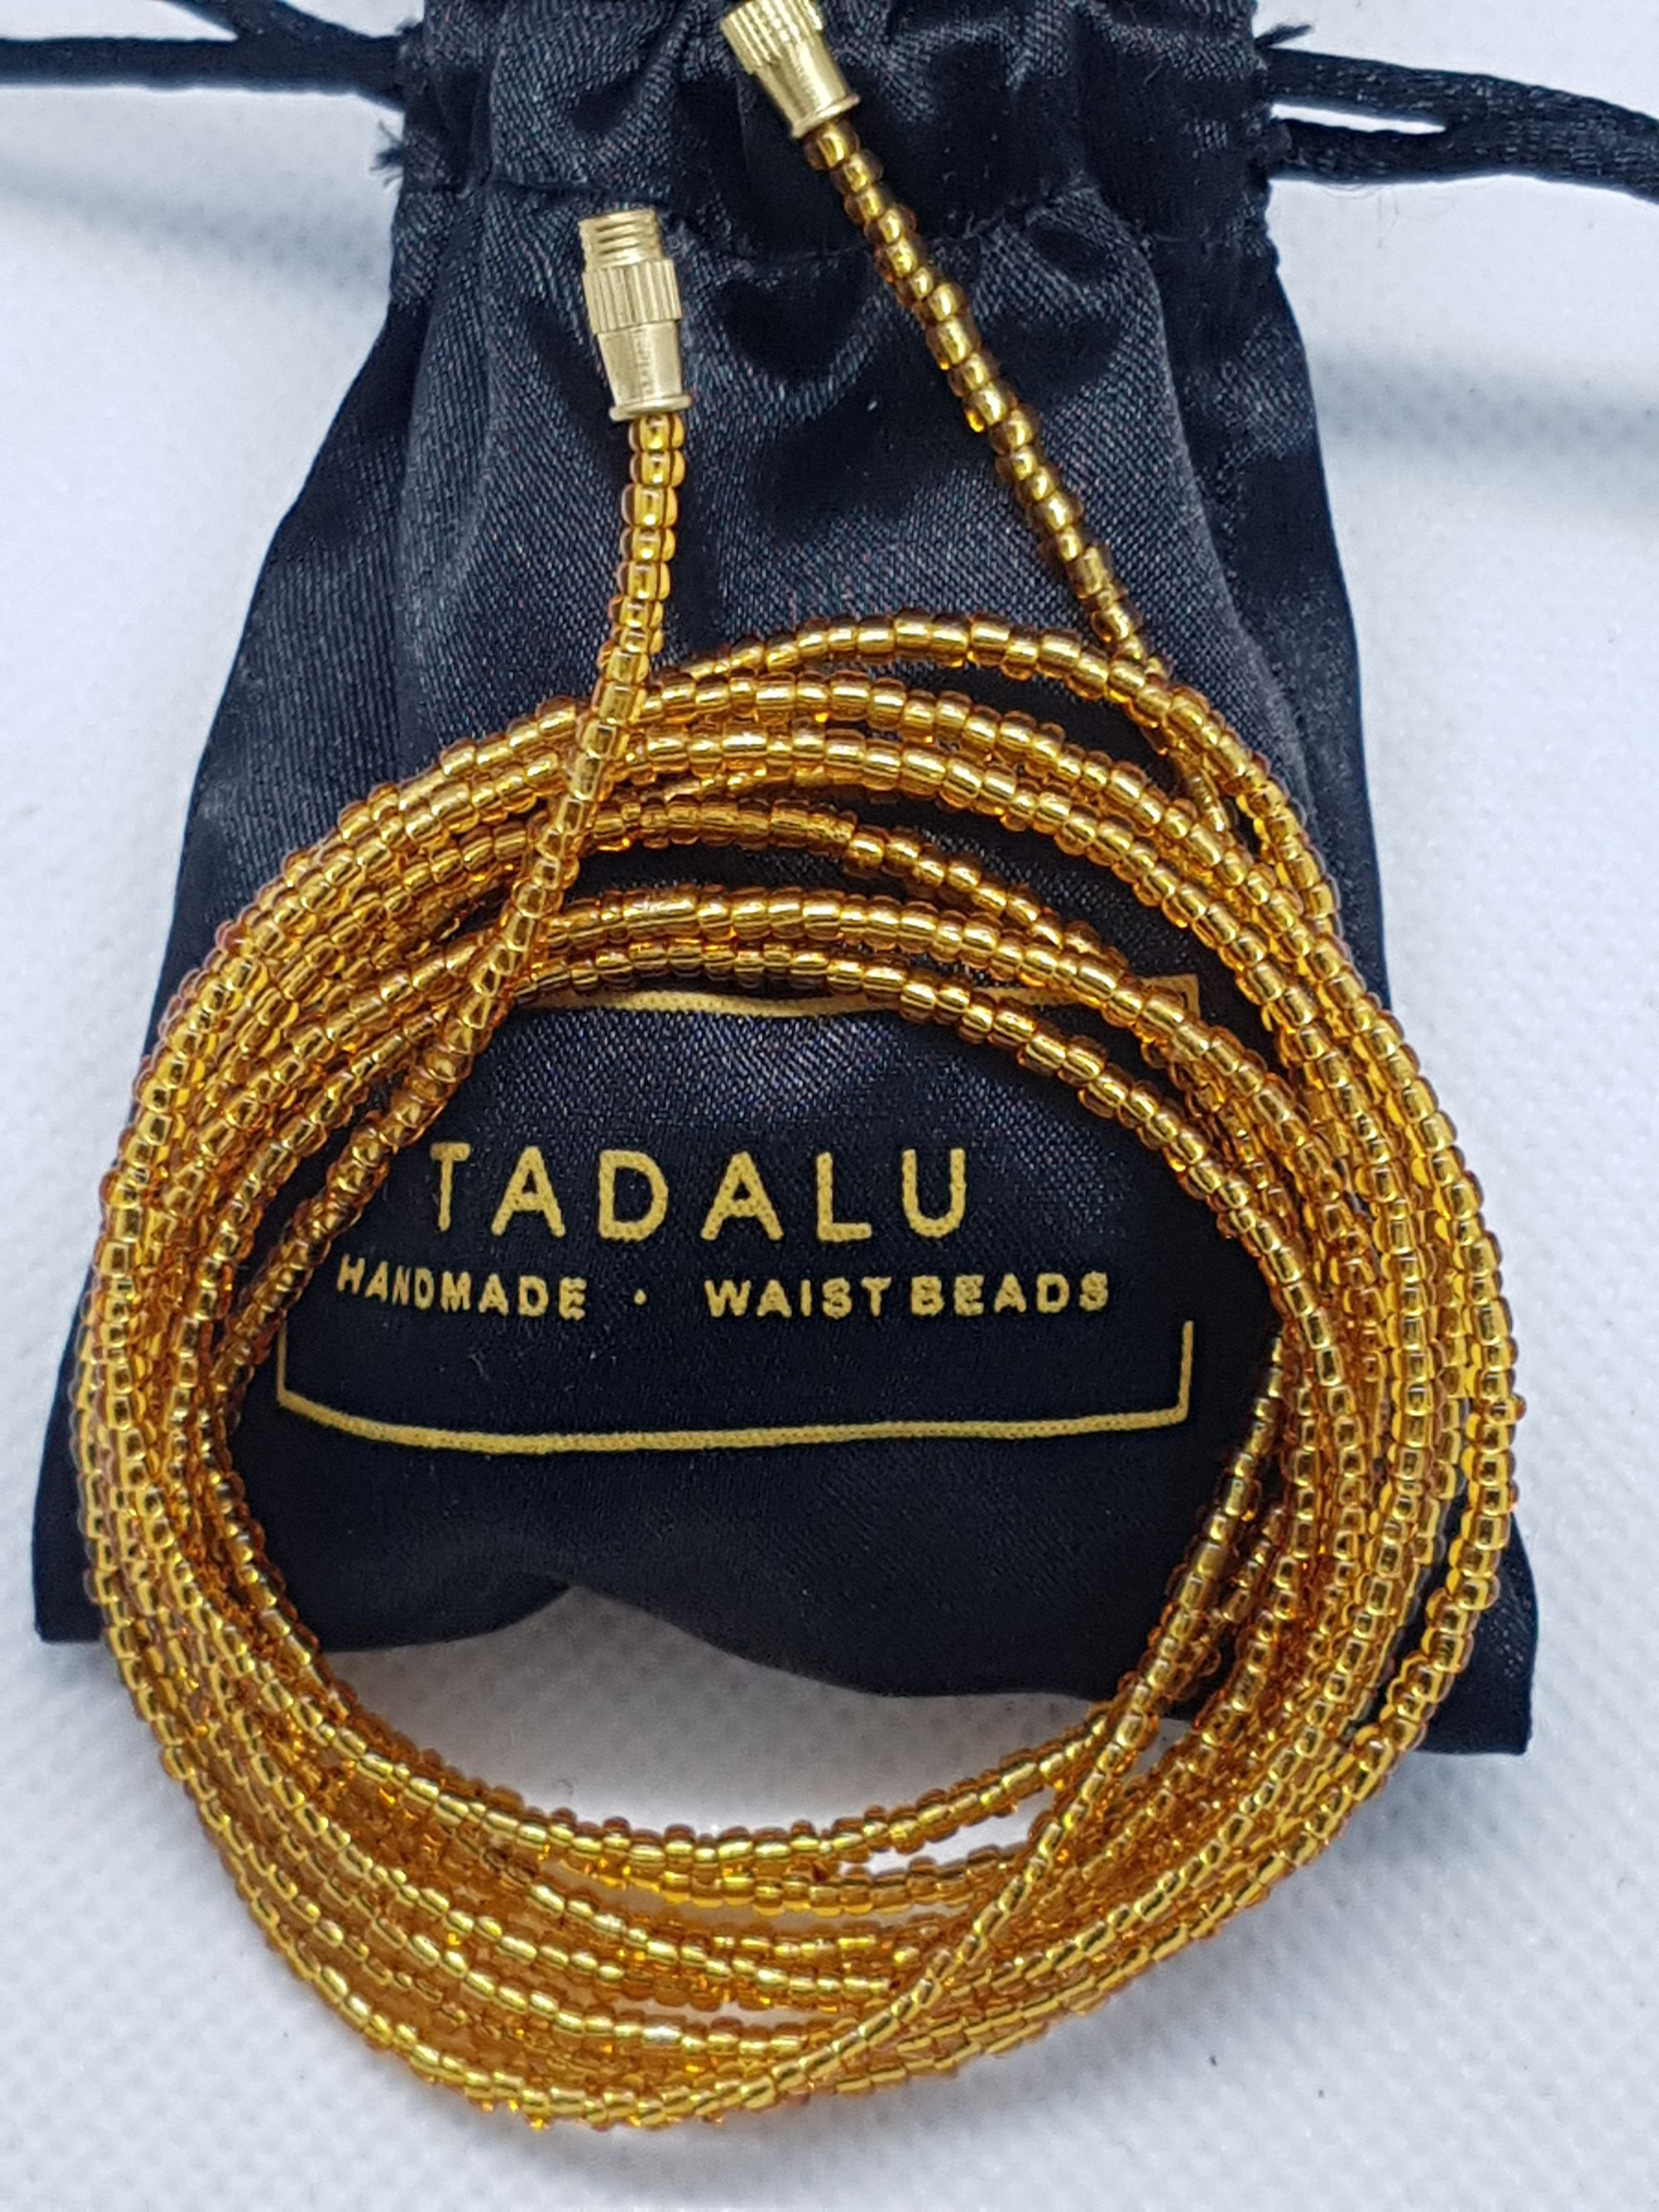 It is said that the beads shape your body and keep the